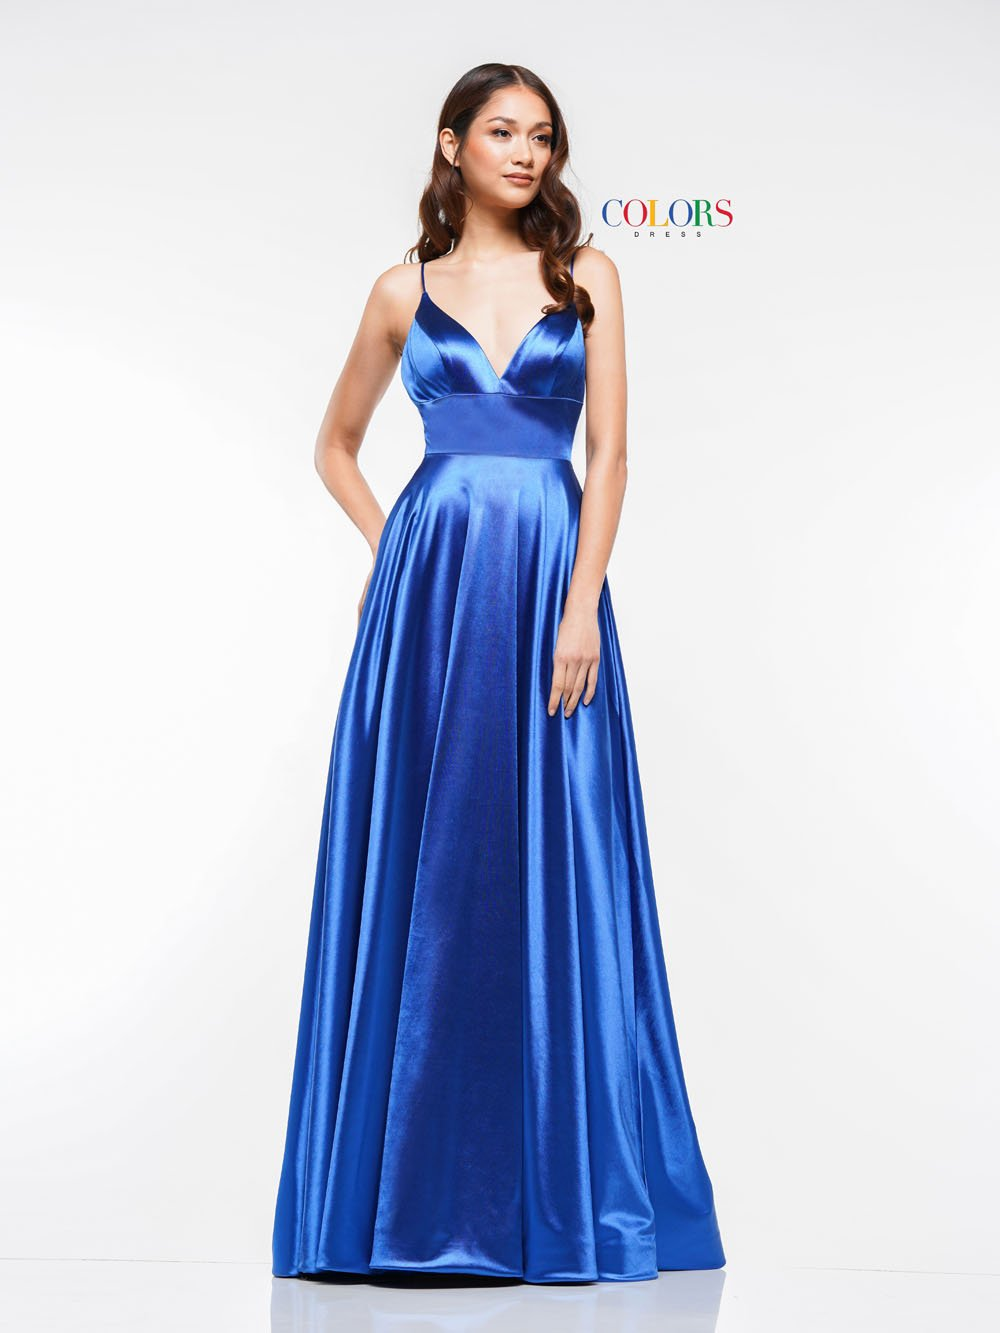 Colors Dress 2184 prom dress images.  Colors 2184 dresses are available in these colors: Black, Blush, Fuchsia, Gunmetal, Royal.